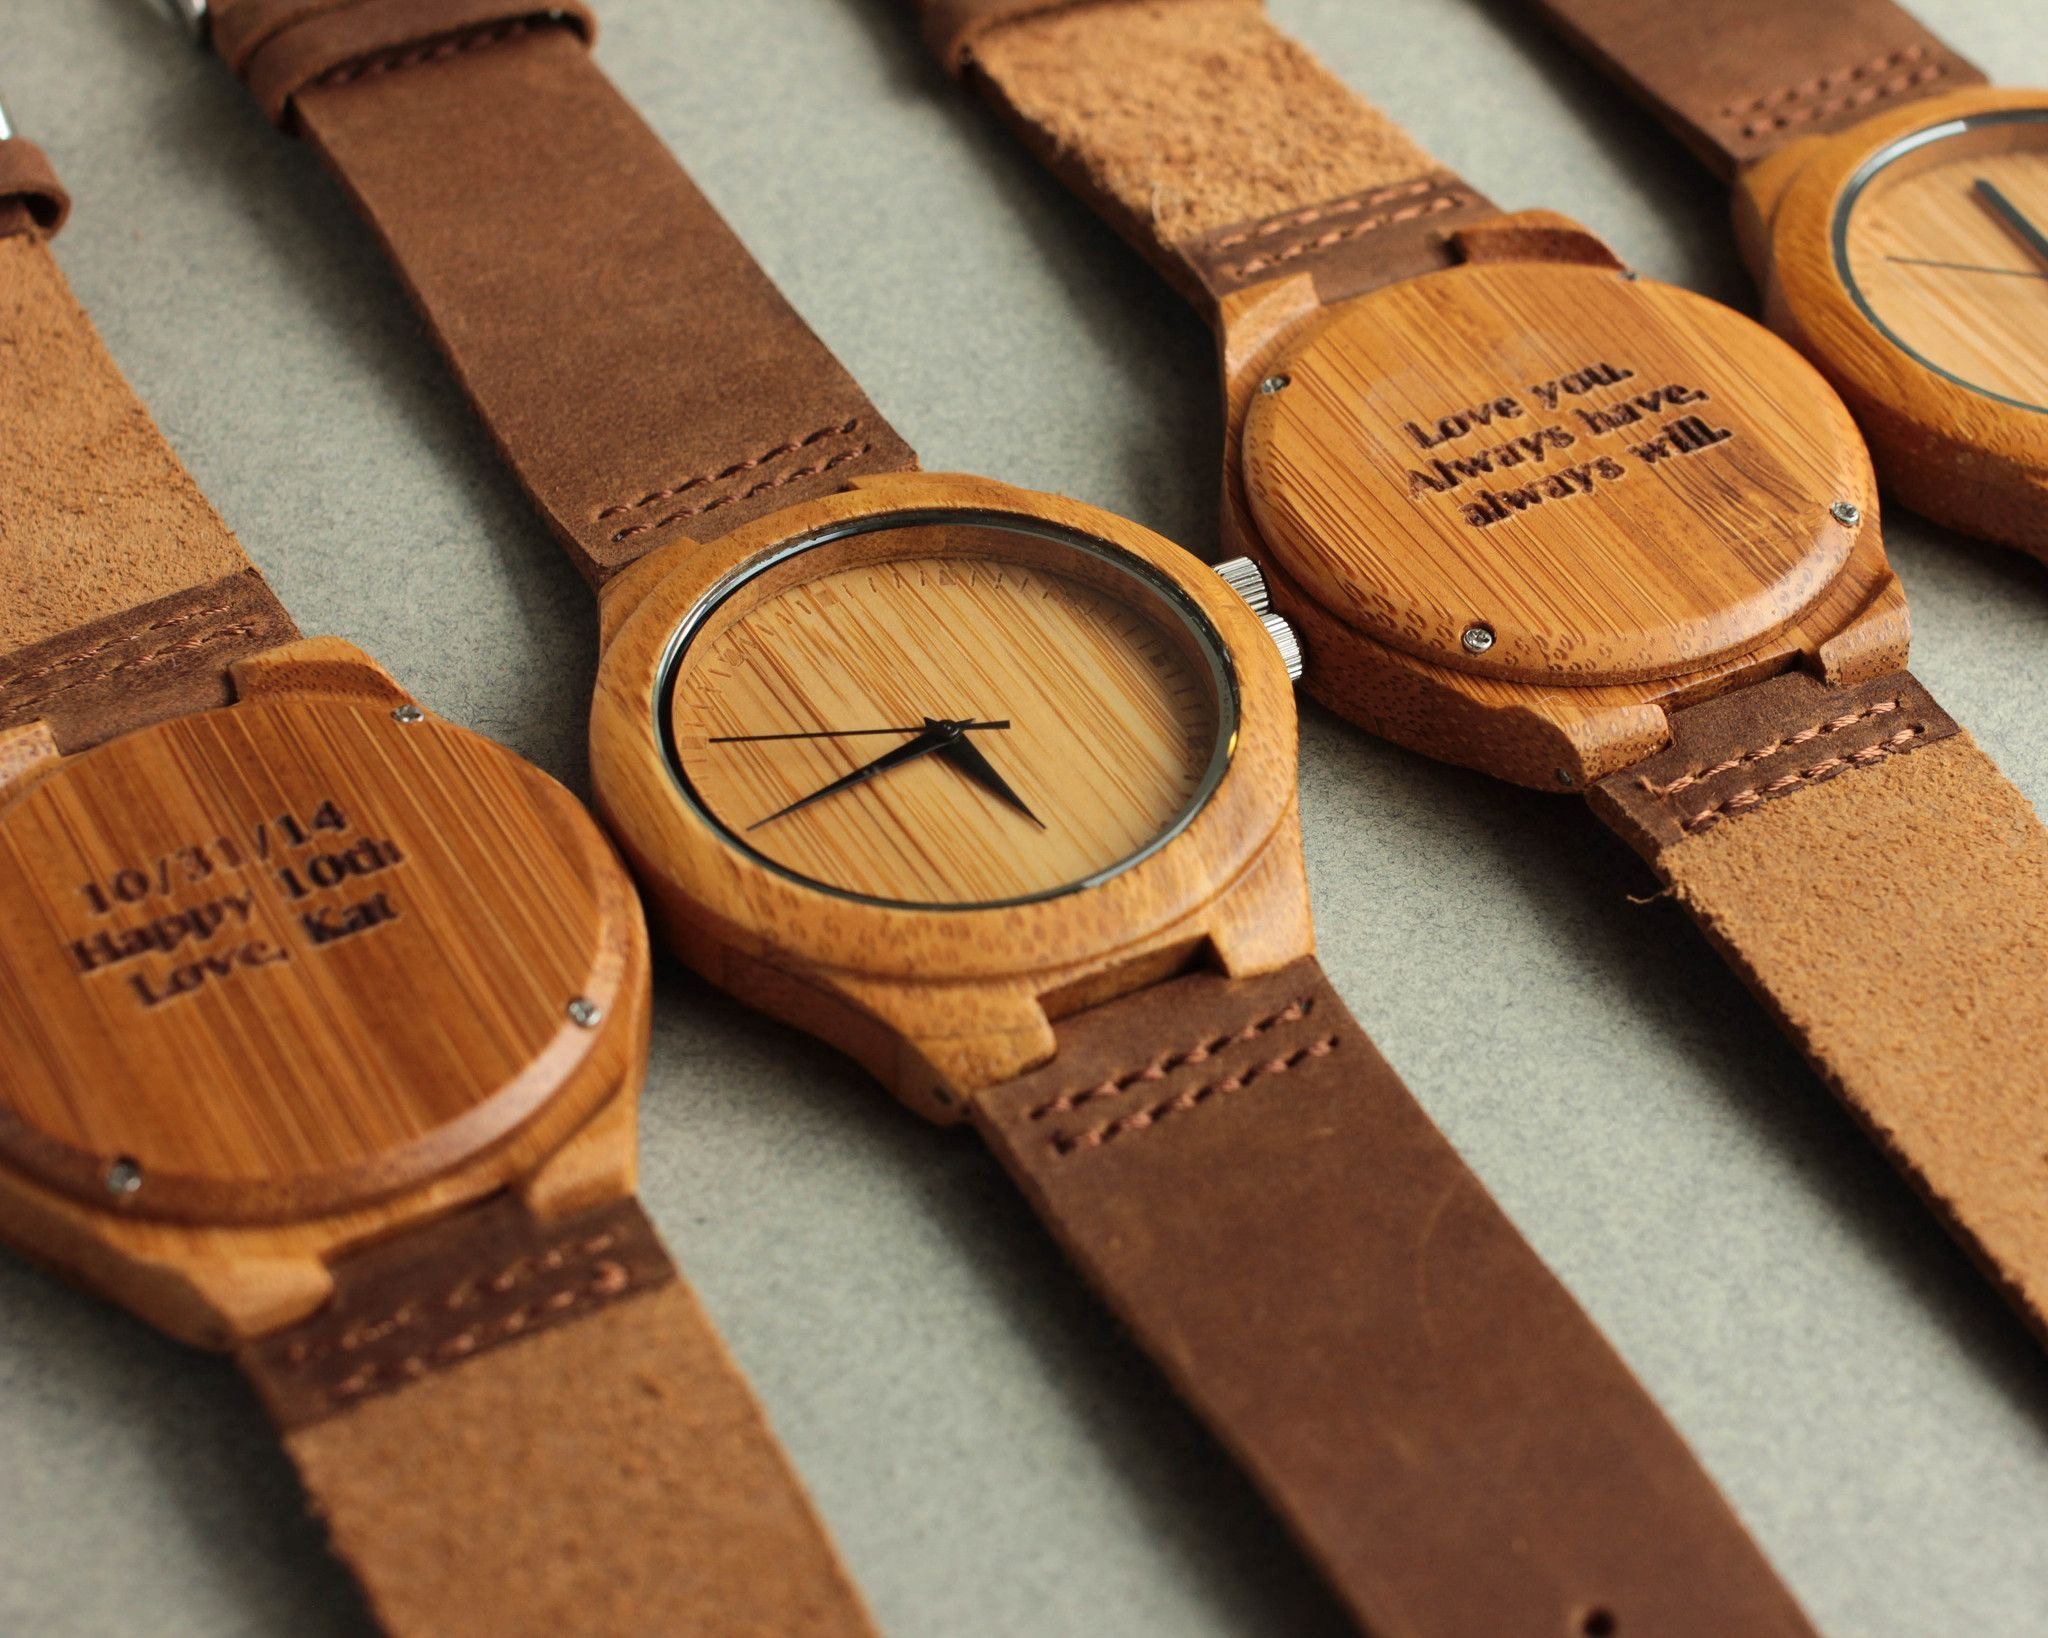 with watches wristwatches for bird men apparel africa s wood this custom product free lea watch available bamboo in wooden genuine luxury shipping bobo cowhide best south space